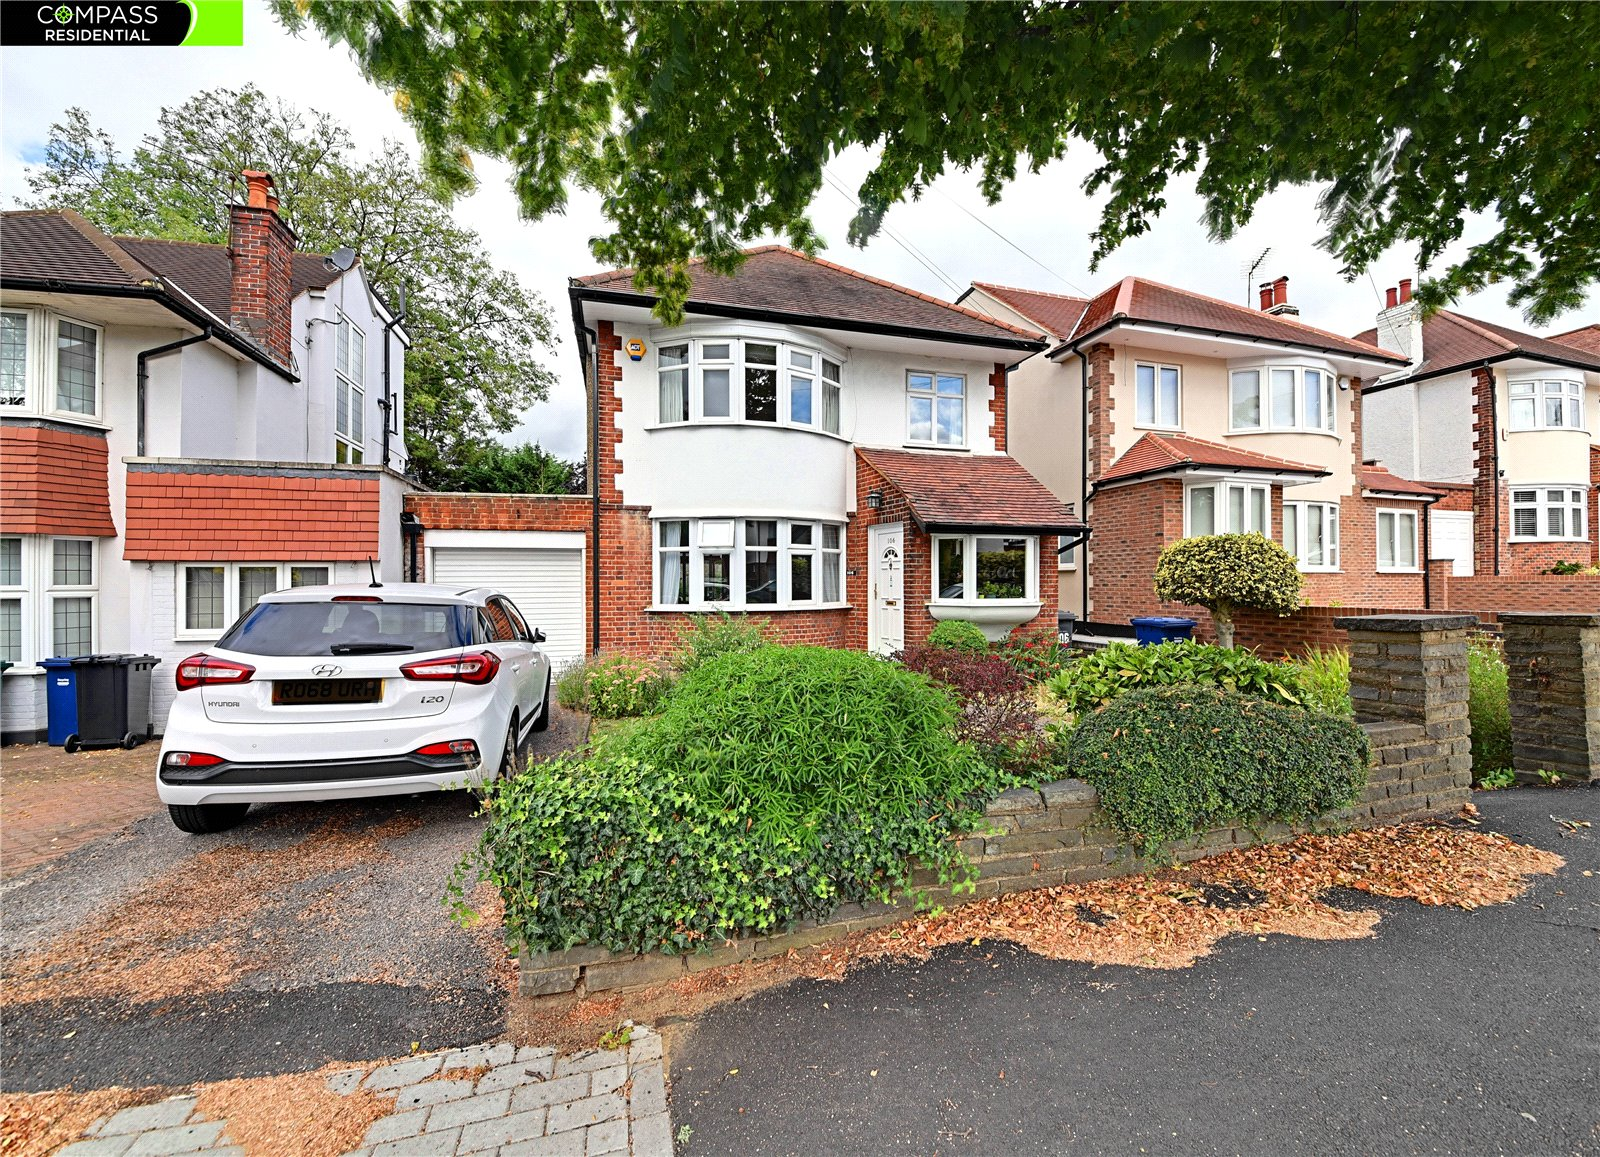 3 bed house for sale in Totteridge, N20 8HL - Property Image 1